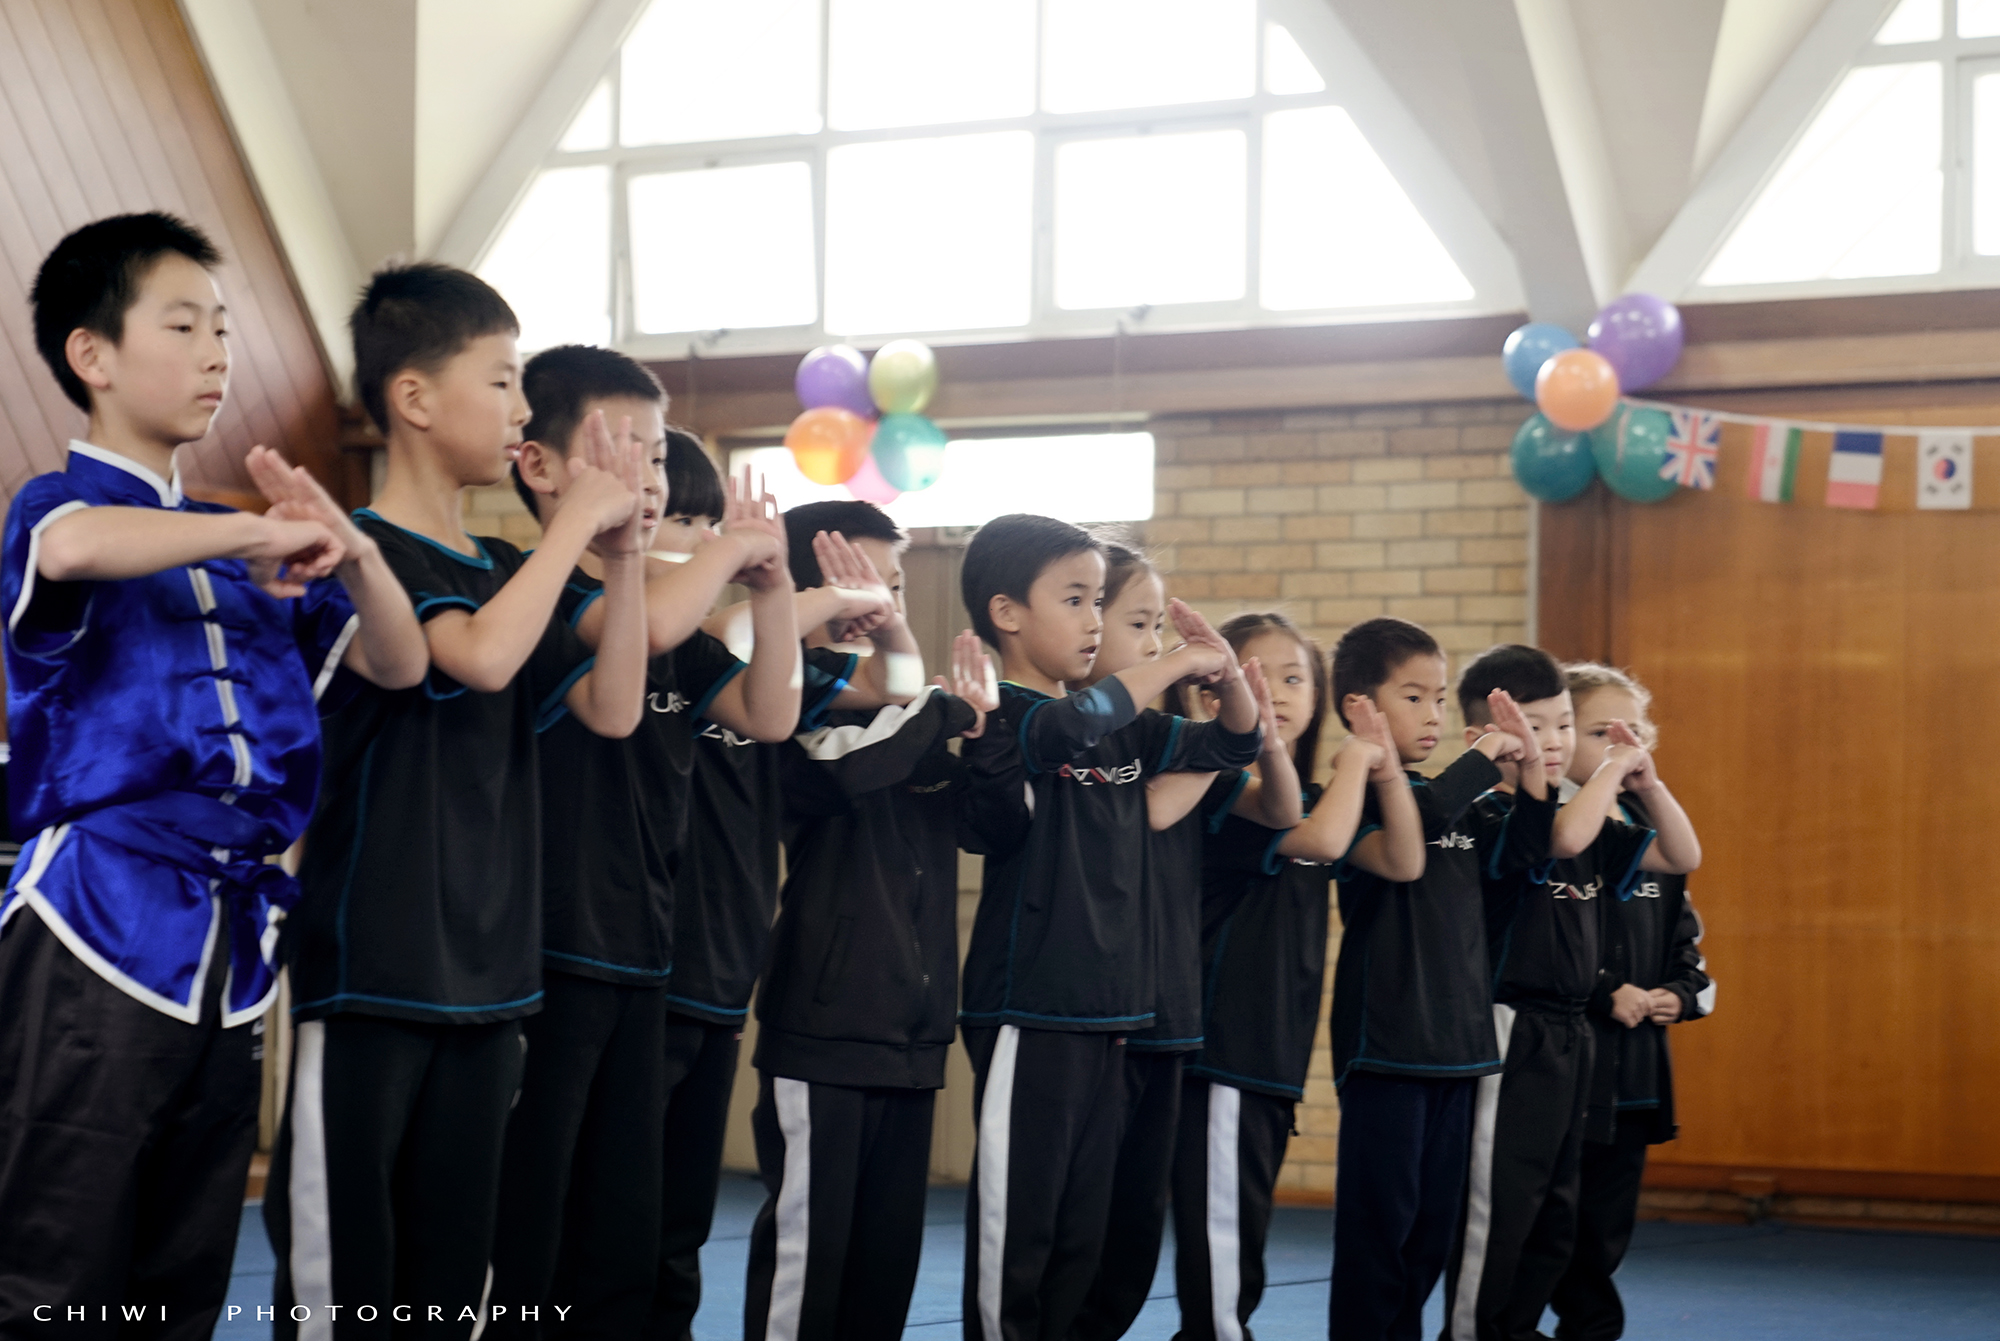 NZ Wushu Kids salute at end of performance